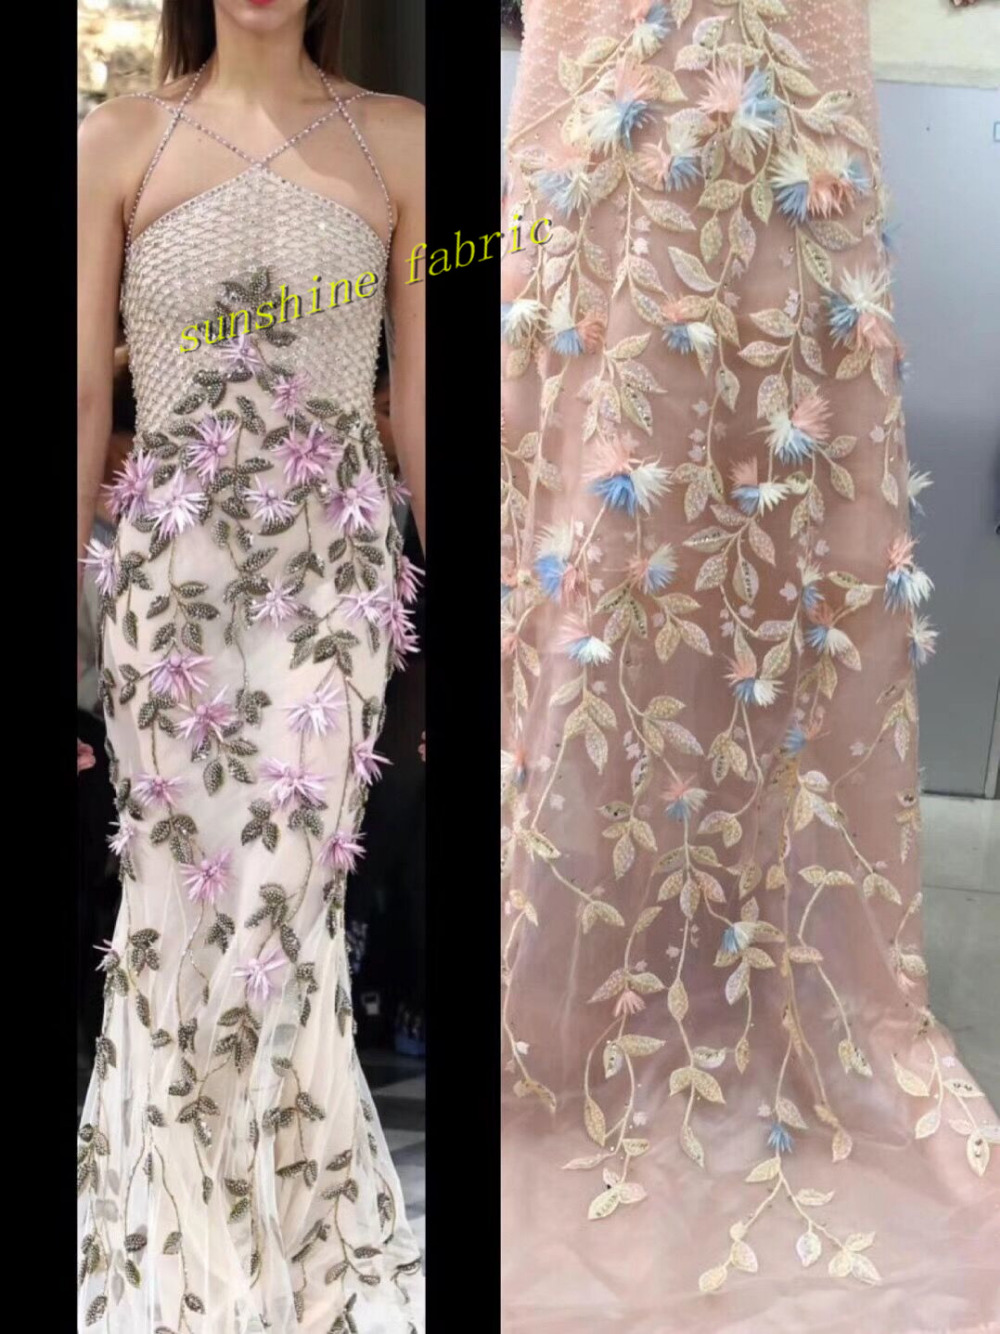 Luxury French lace latest lace high quality 3D applique flower lace fabric for bridal beaded And Stones lace fabric for dress